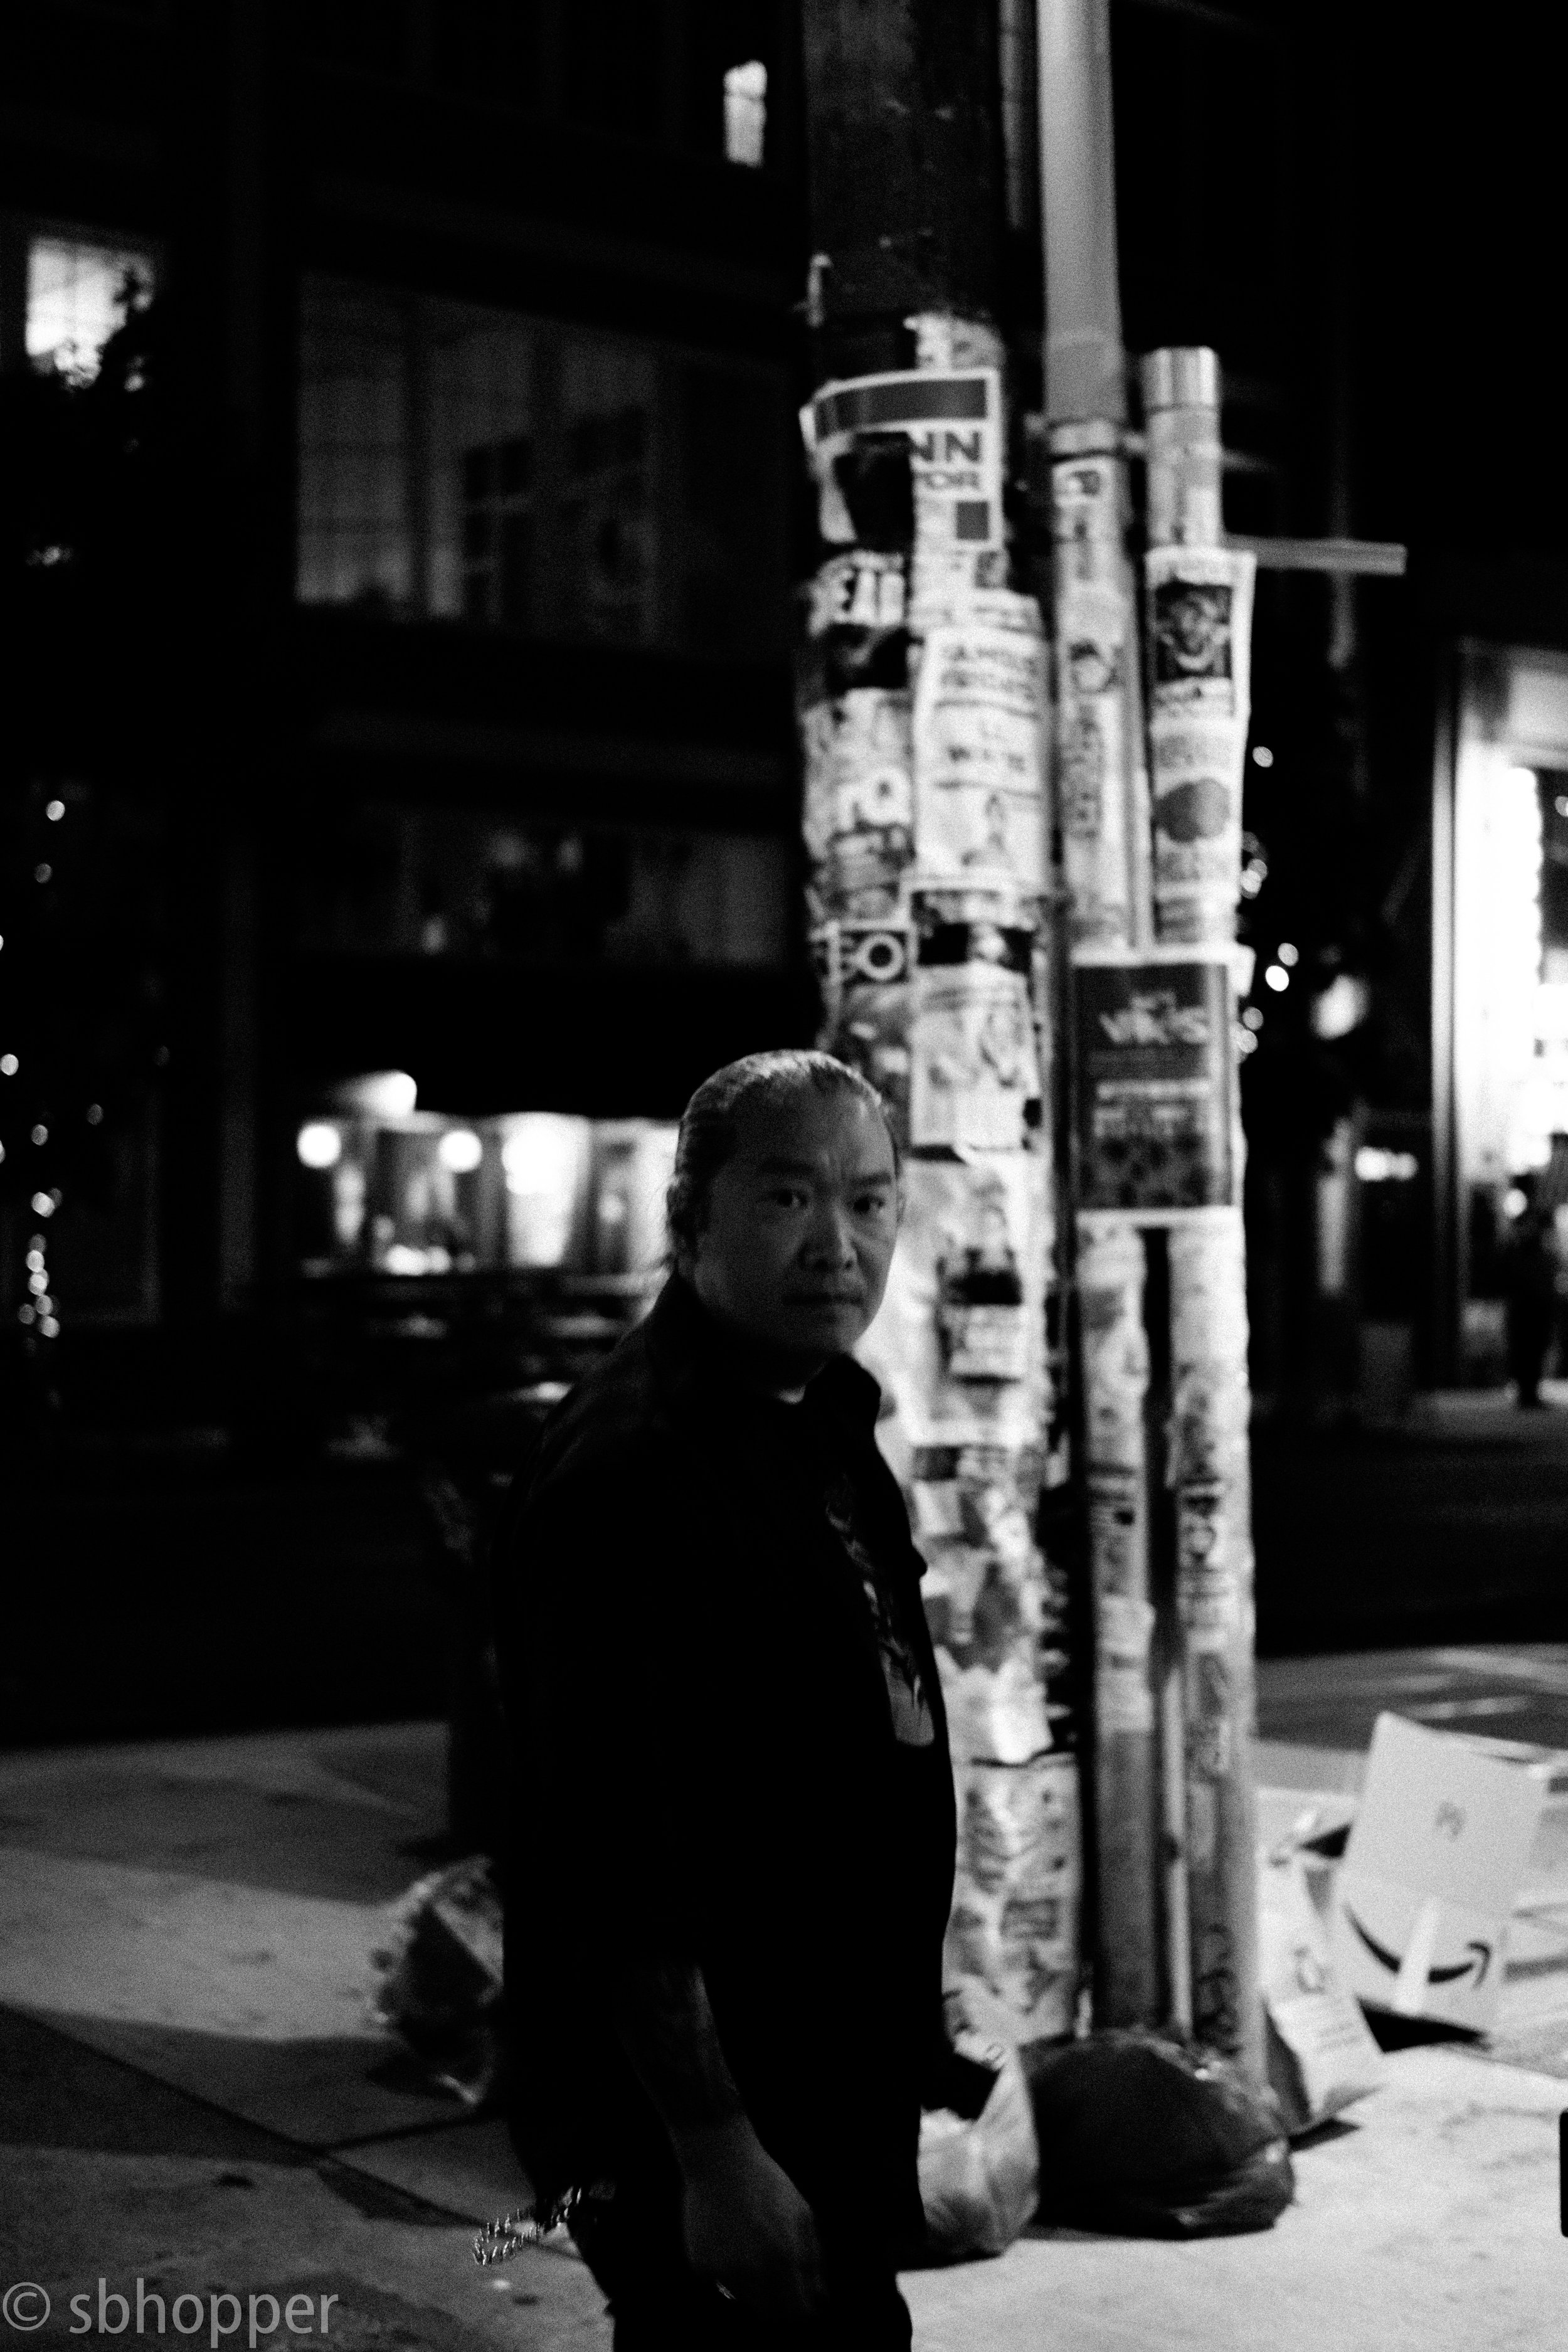 Street Photography invisiblehour